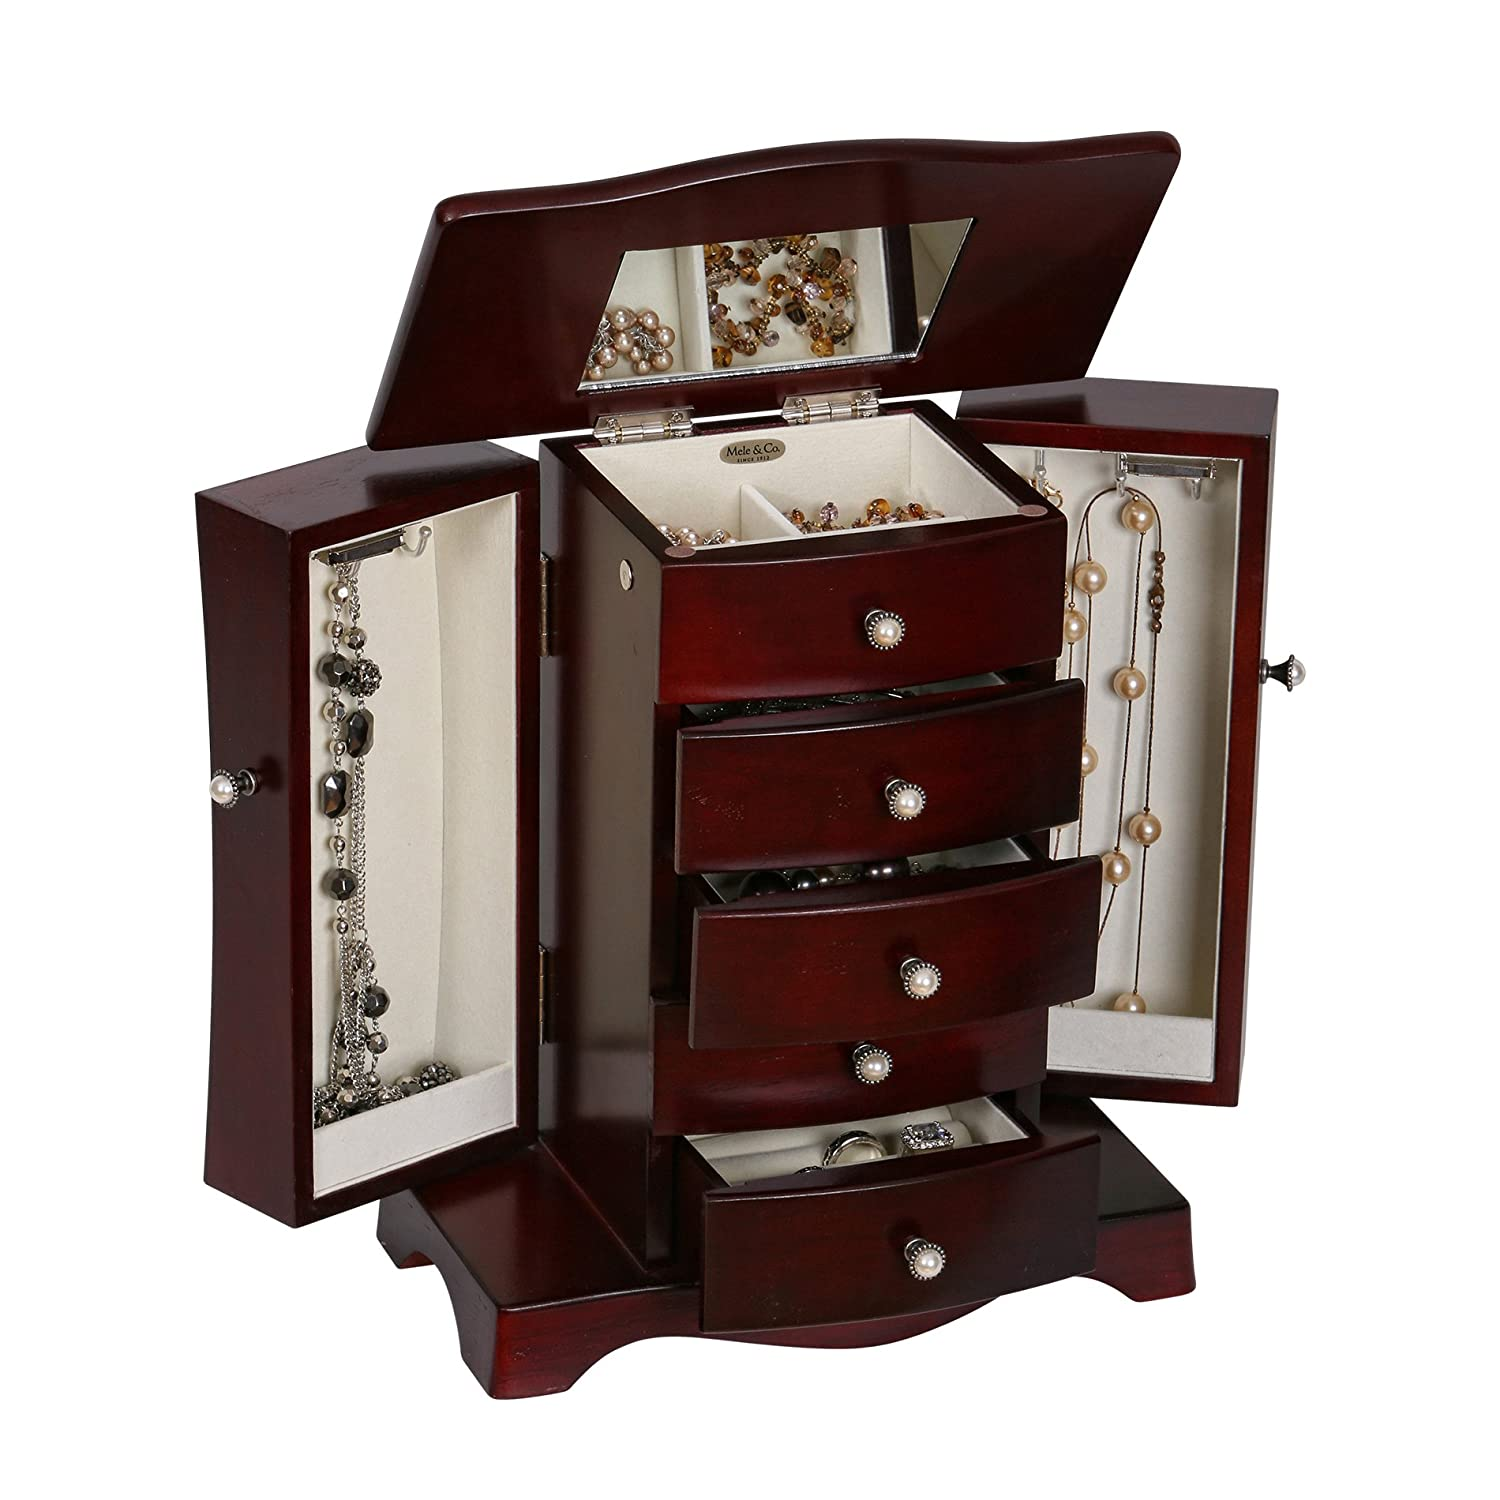 Amazoncom Mele Co Bette Wooden Jewelry Box Mahogany Finish